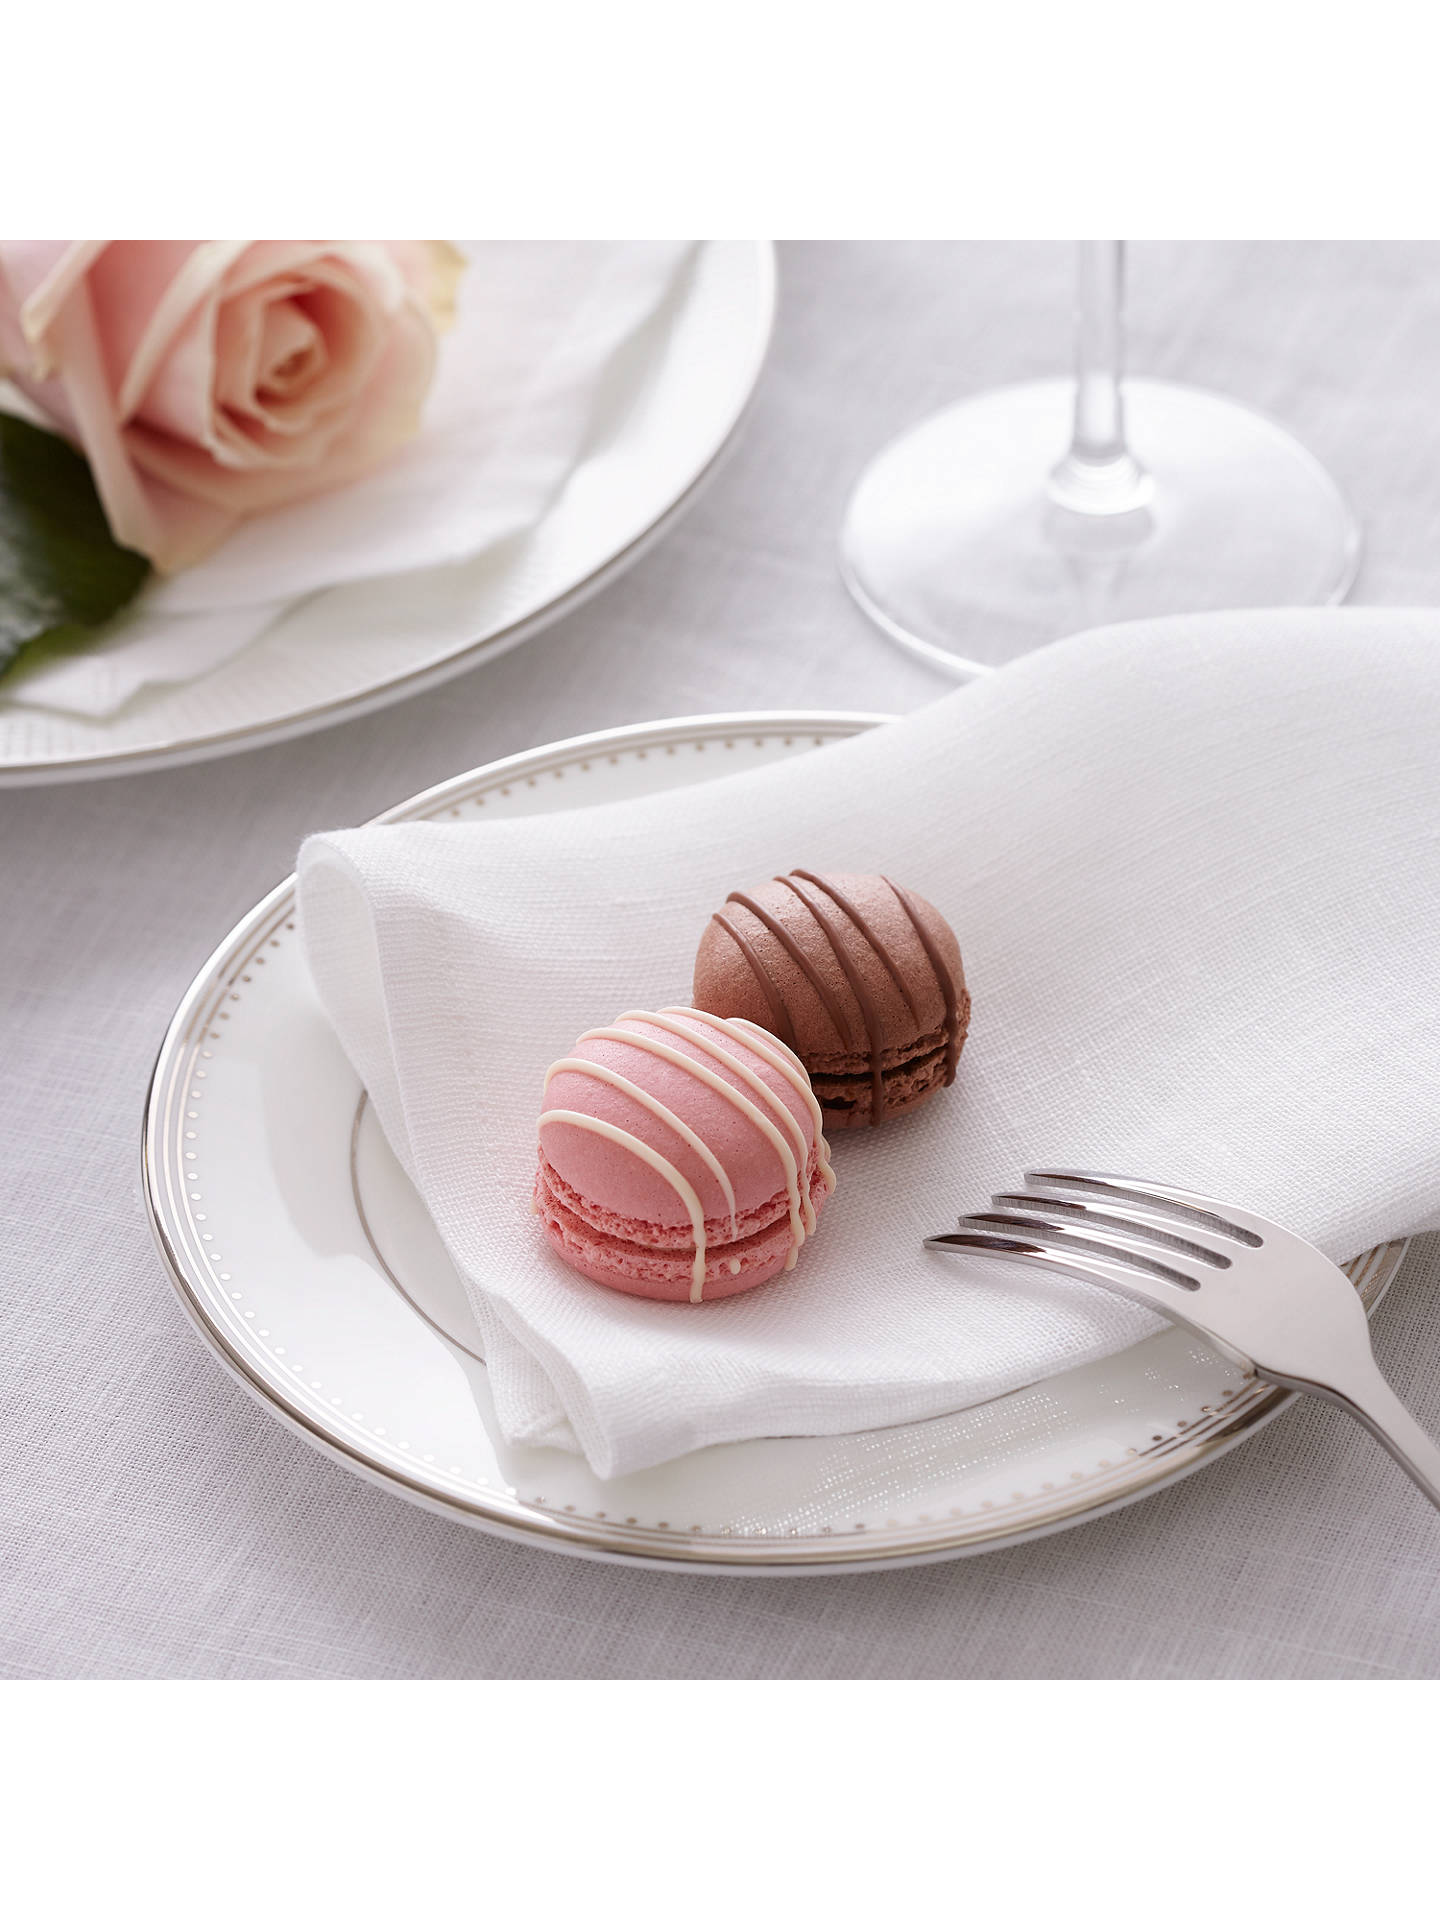 BuyThe Cocoabean Company Strawberry and Chocolate Macaroons Online at johnlewis.com